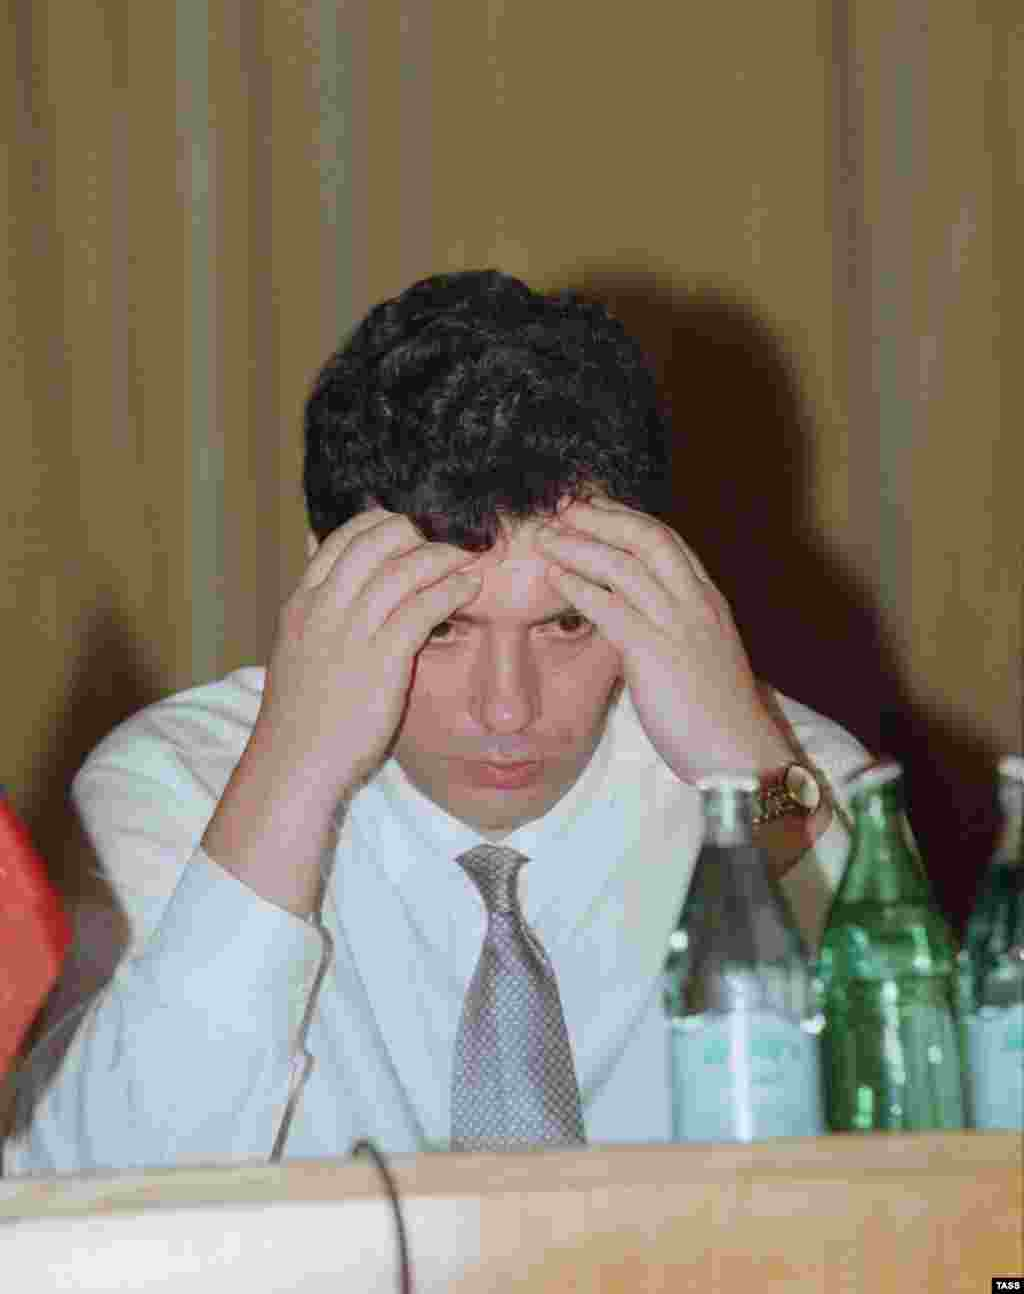 Nemtsov speaks during his first 100 days in office as deputy prime minister in 1997.